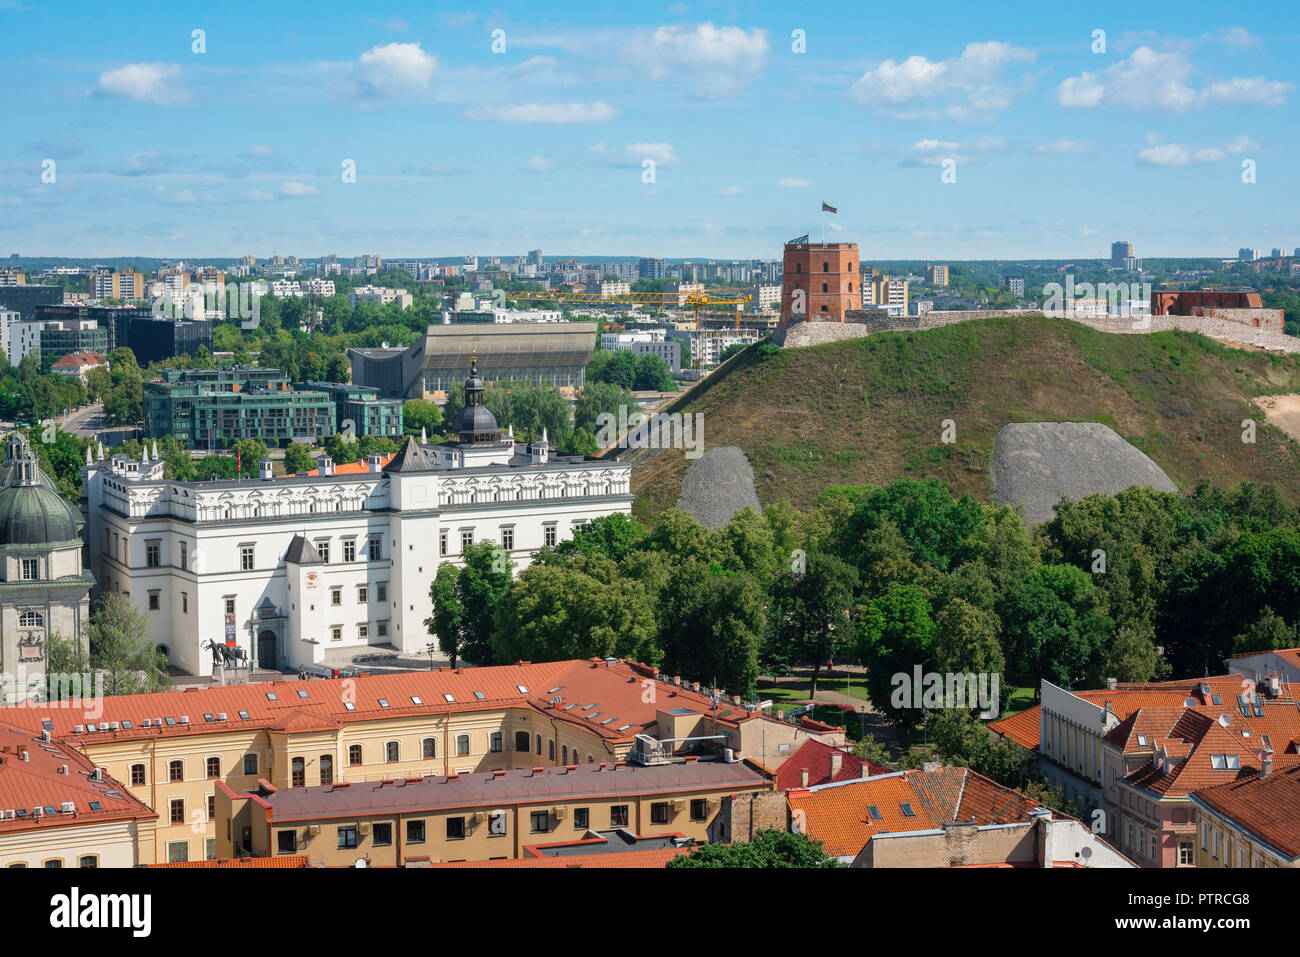 Vilnius Lithuania, aerial view across the roofs of Vilnius old town towards the Palace Of The Grand Dukes of Lithuania and Gediminas Hill. - Stock Image